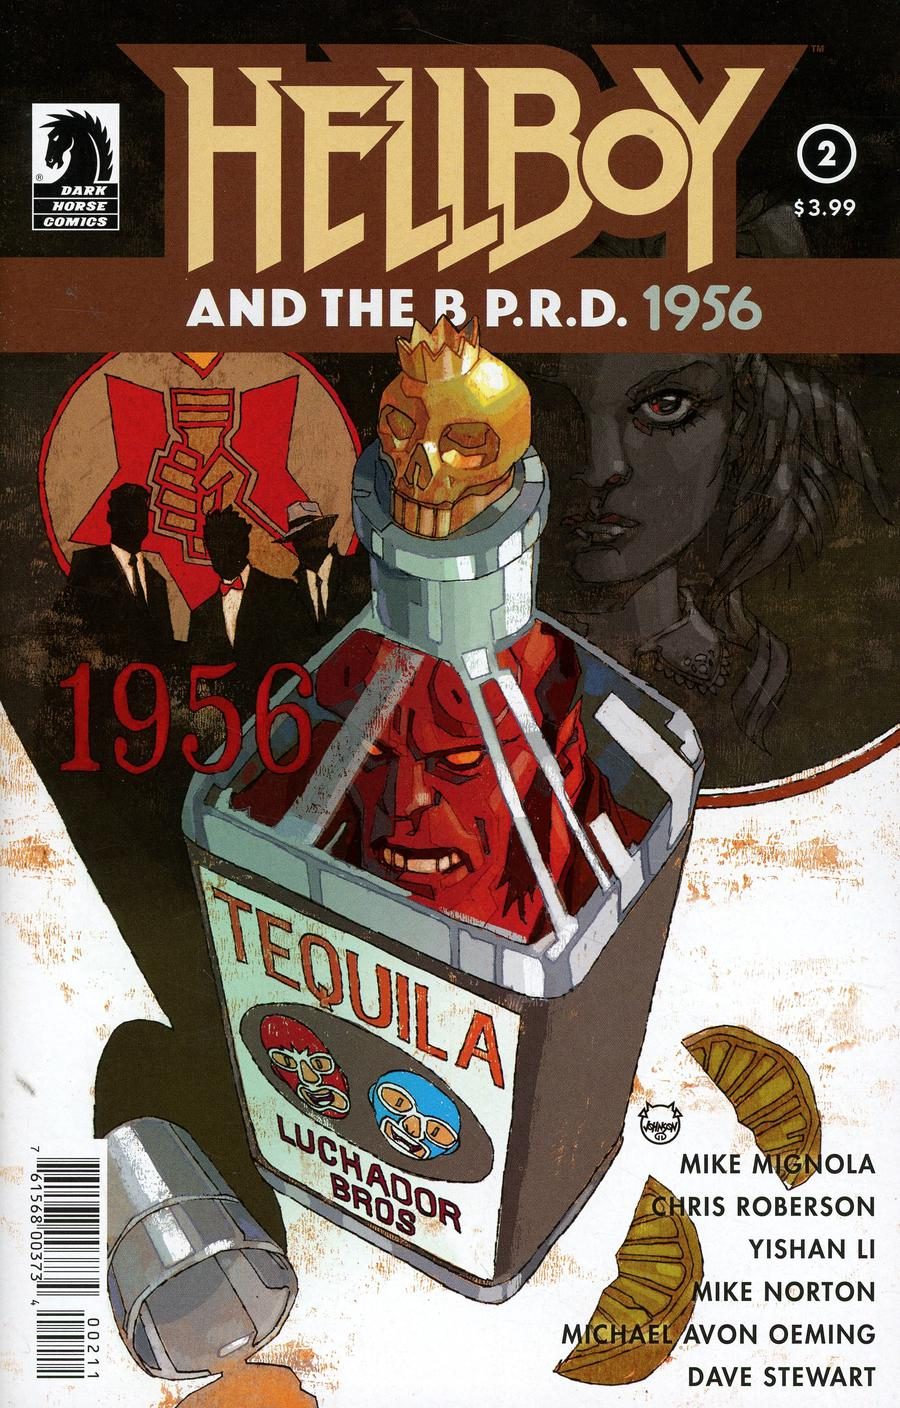 Hellboy And The BPRD 1956 #2